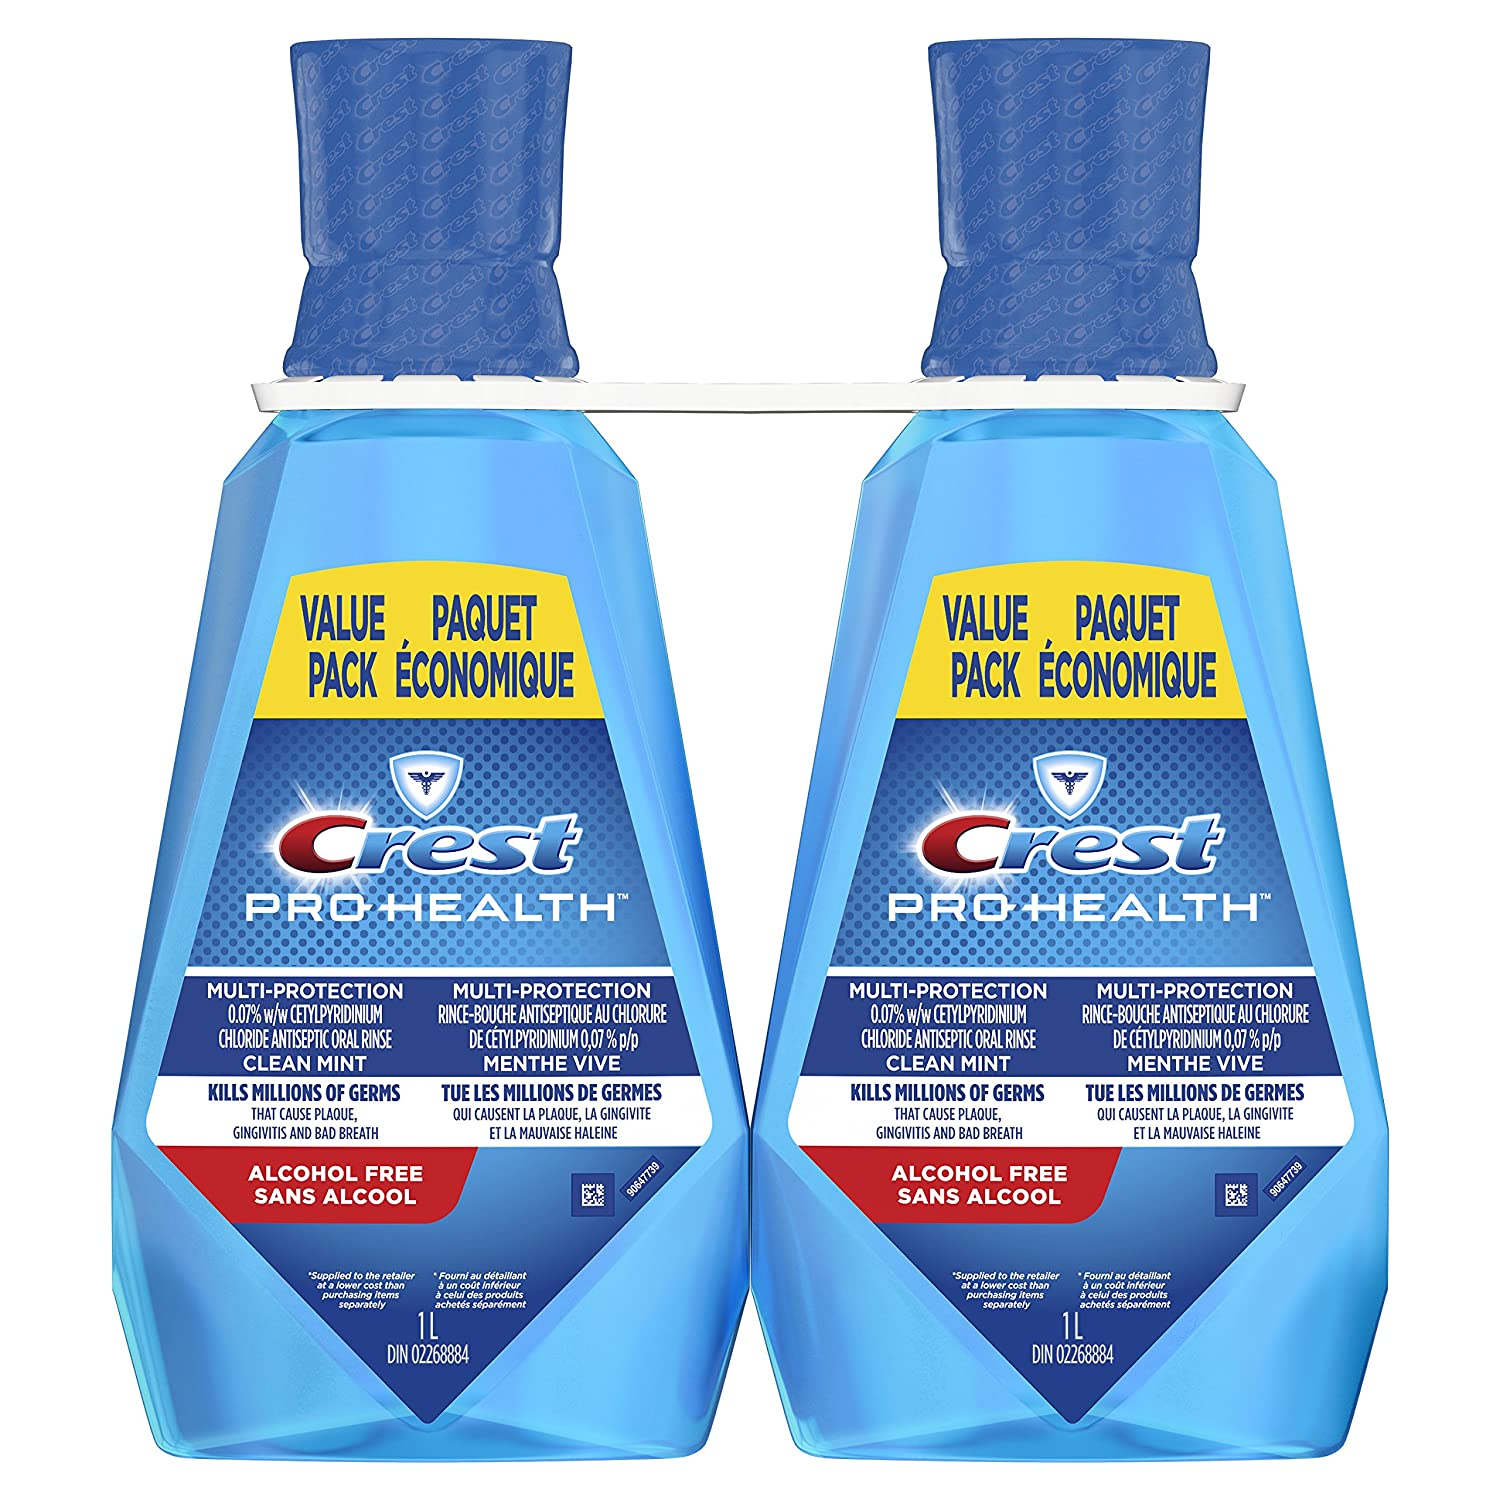 Crest Pro-Health Multi-Protection Mouthwash, Clean Mint, Pack of 2, 1 Liter Procter and Gamble